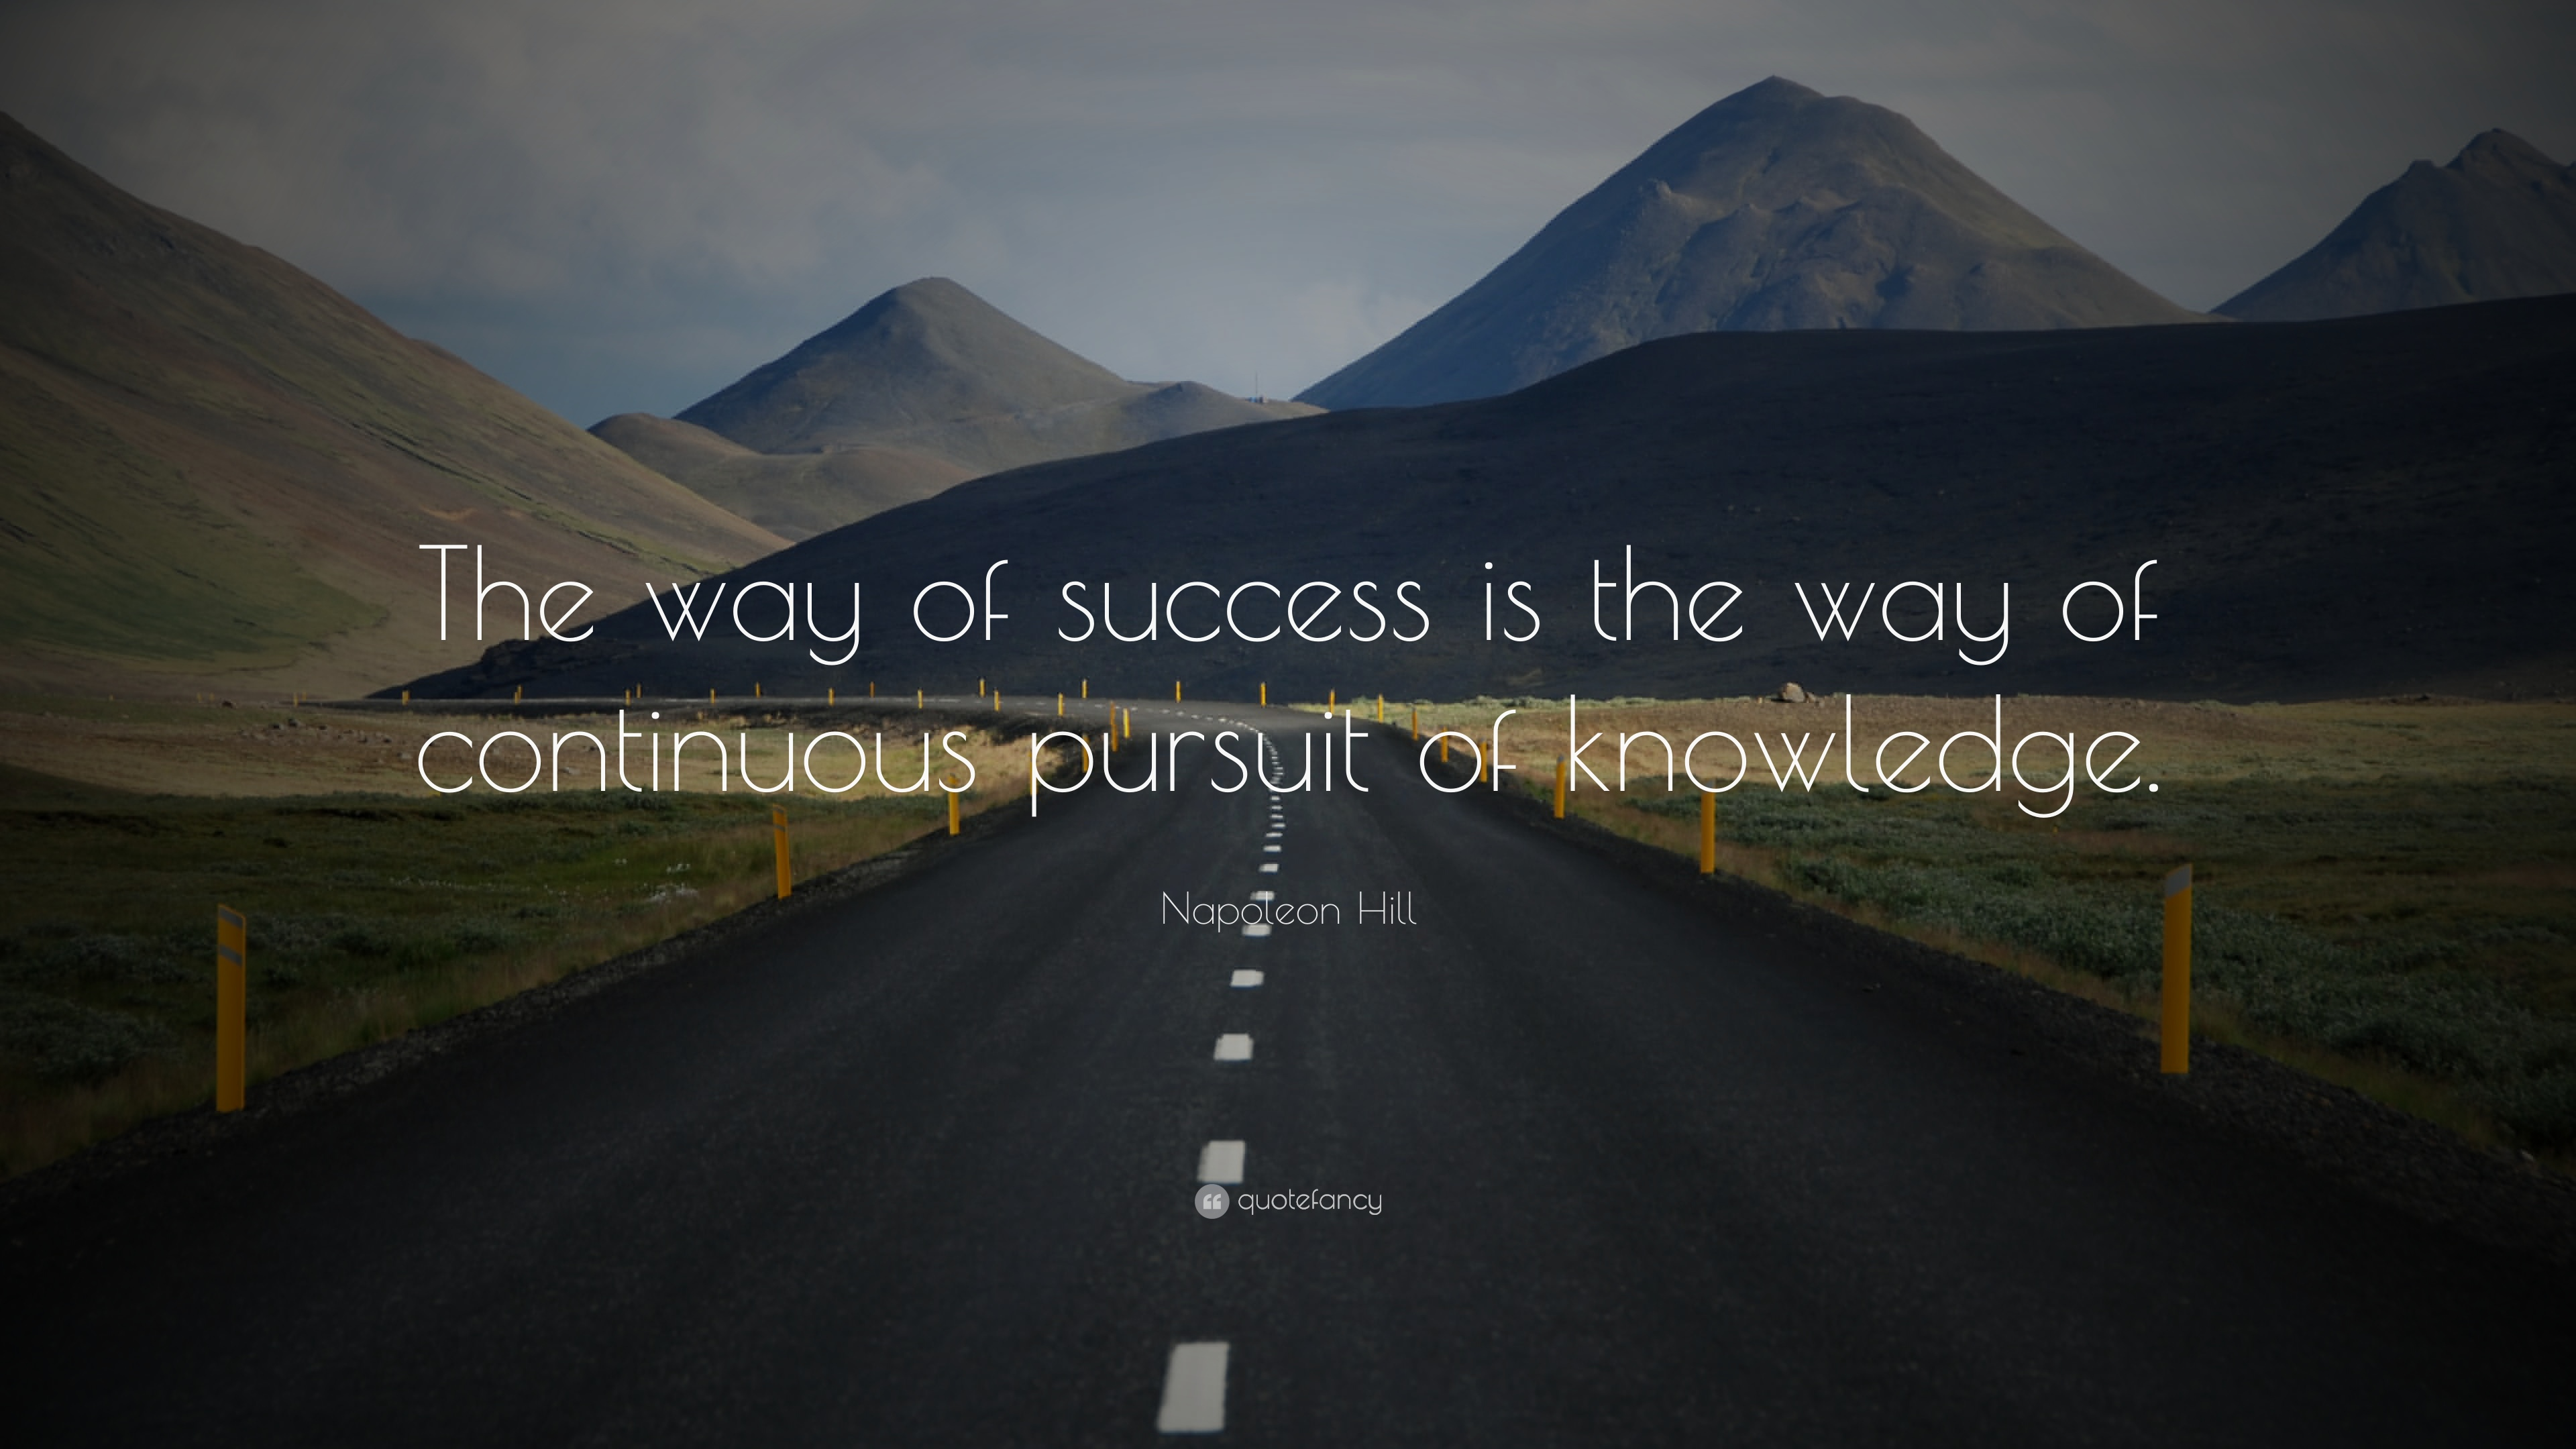 success quotes 52 quotefancy success quotes the way of success is the way of continuous pursuit of knowledge